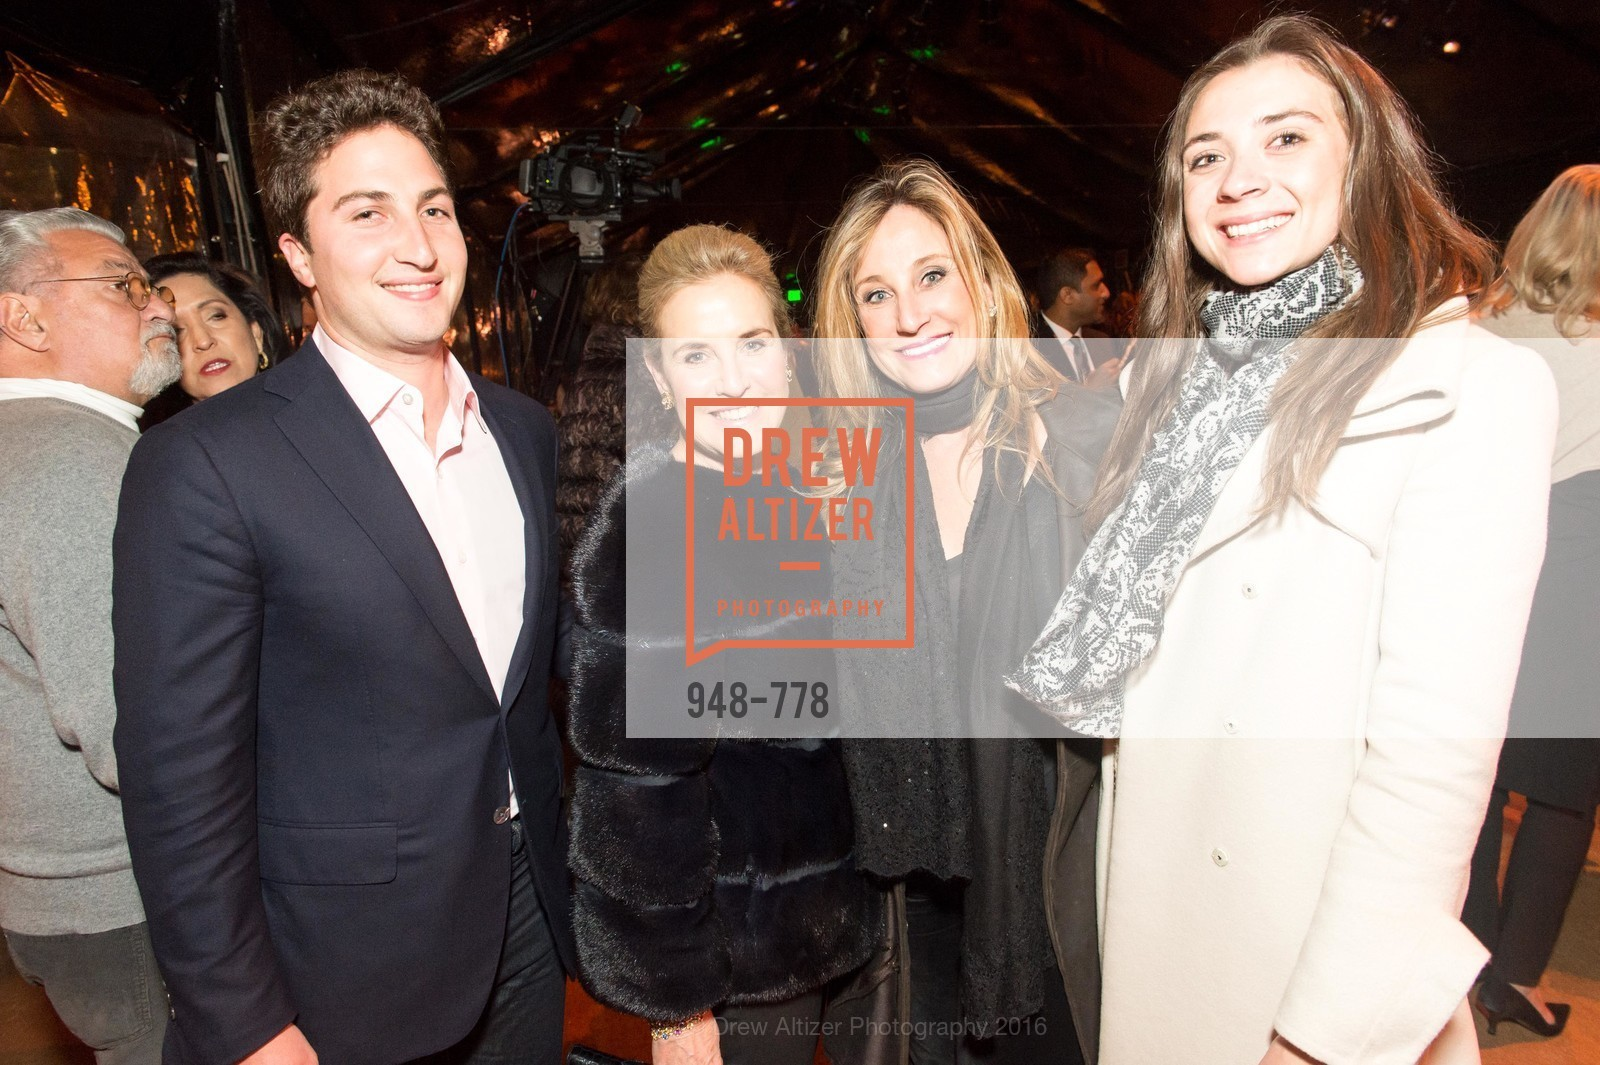 Jason Goldman, Lisa Goldman, Dianne Taube, Haley Akchurin, The Bay Lights Grand Relighting Celebration, Epic Steakhouse. 369 The Embarcadero, January 29th, 2016,Drew Altizer, Drew Altizer Photography, full-service agency, private events, San Francisco photographer, photographer california